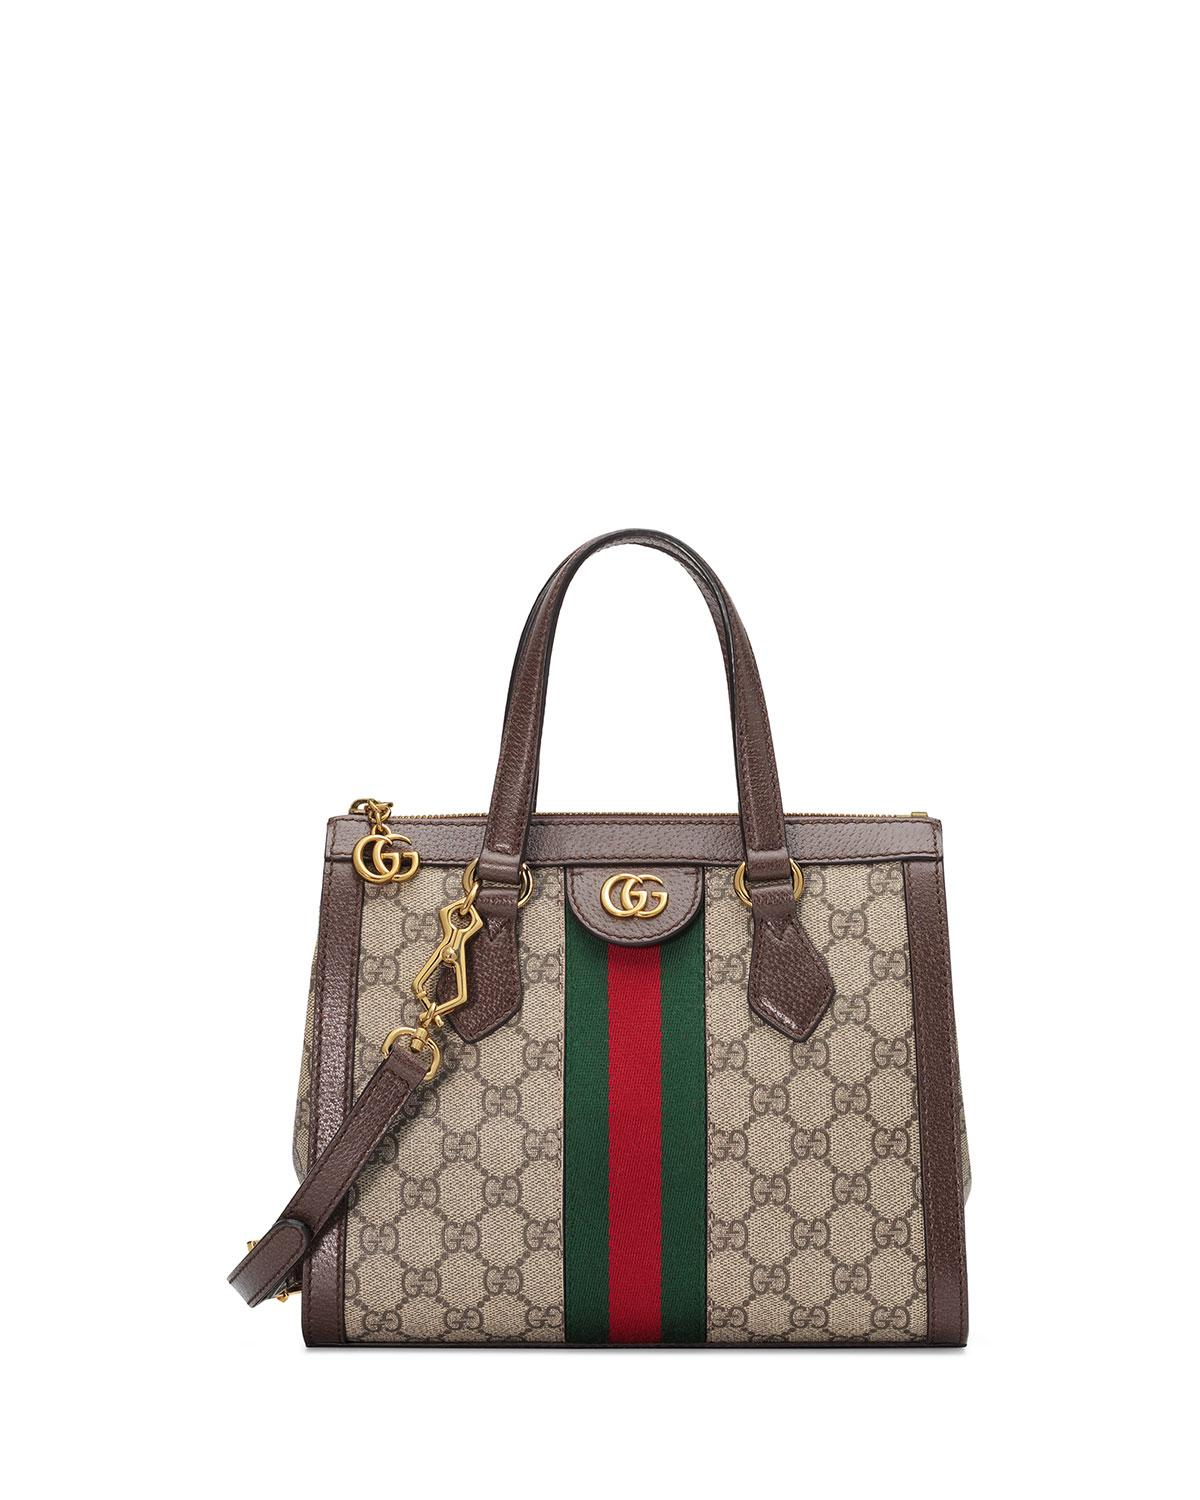 df5348a50b02 Gucci Ophidia Small GG Supreme Canvas Tote Bag in Natural - Save 17 ...